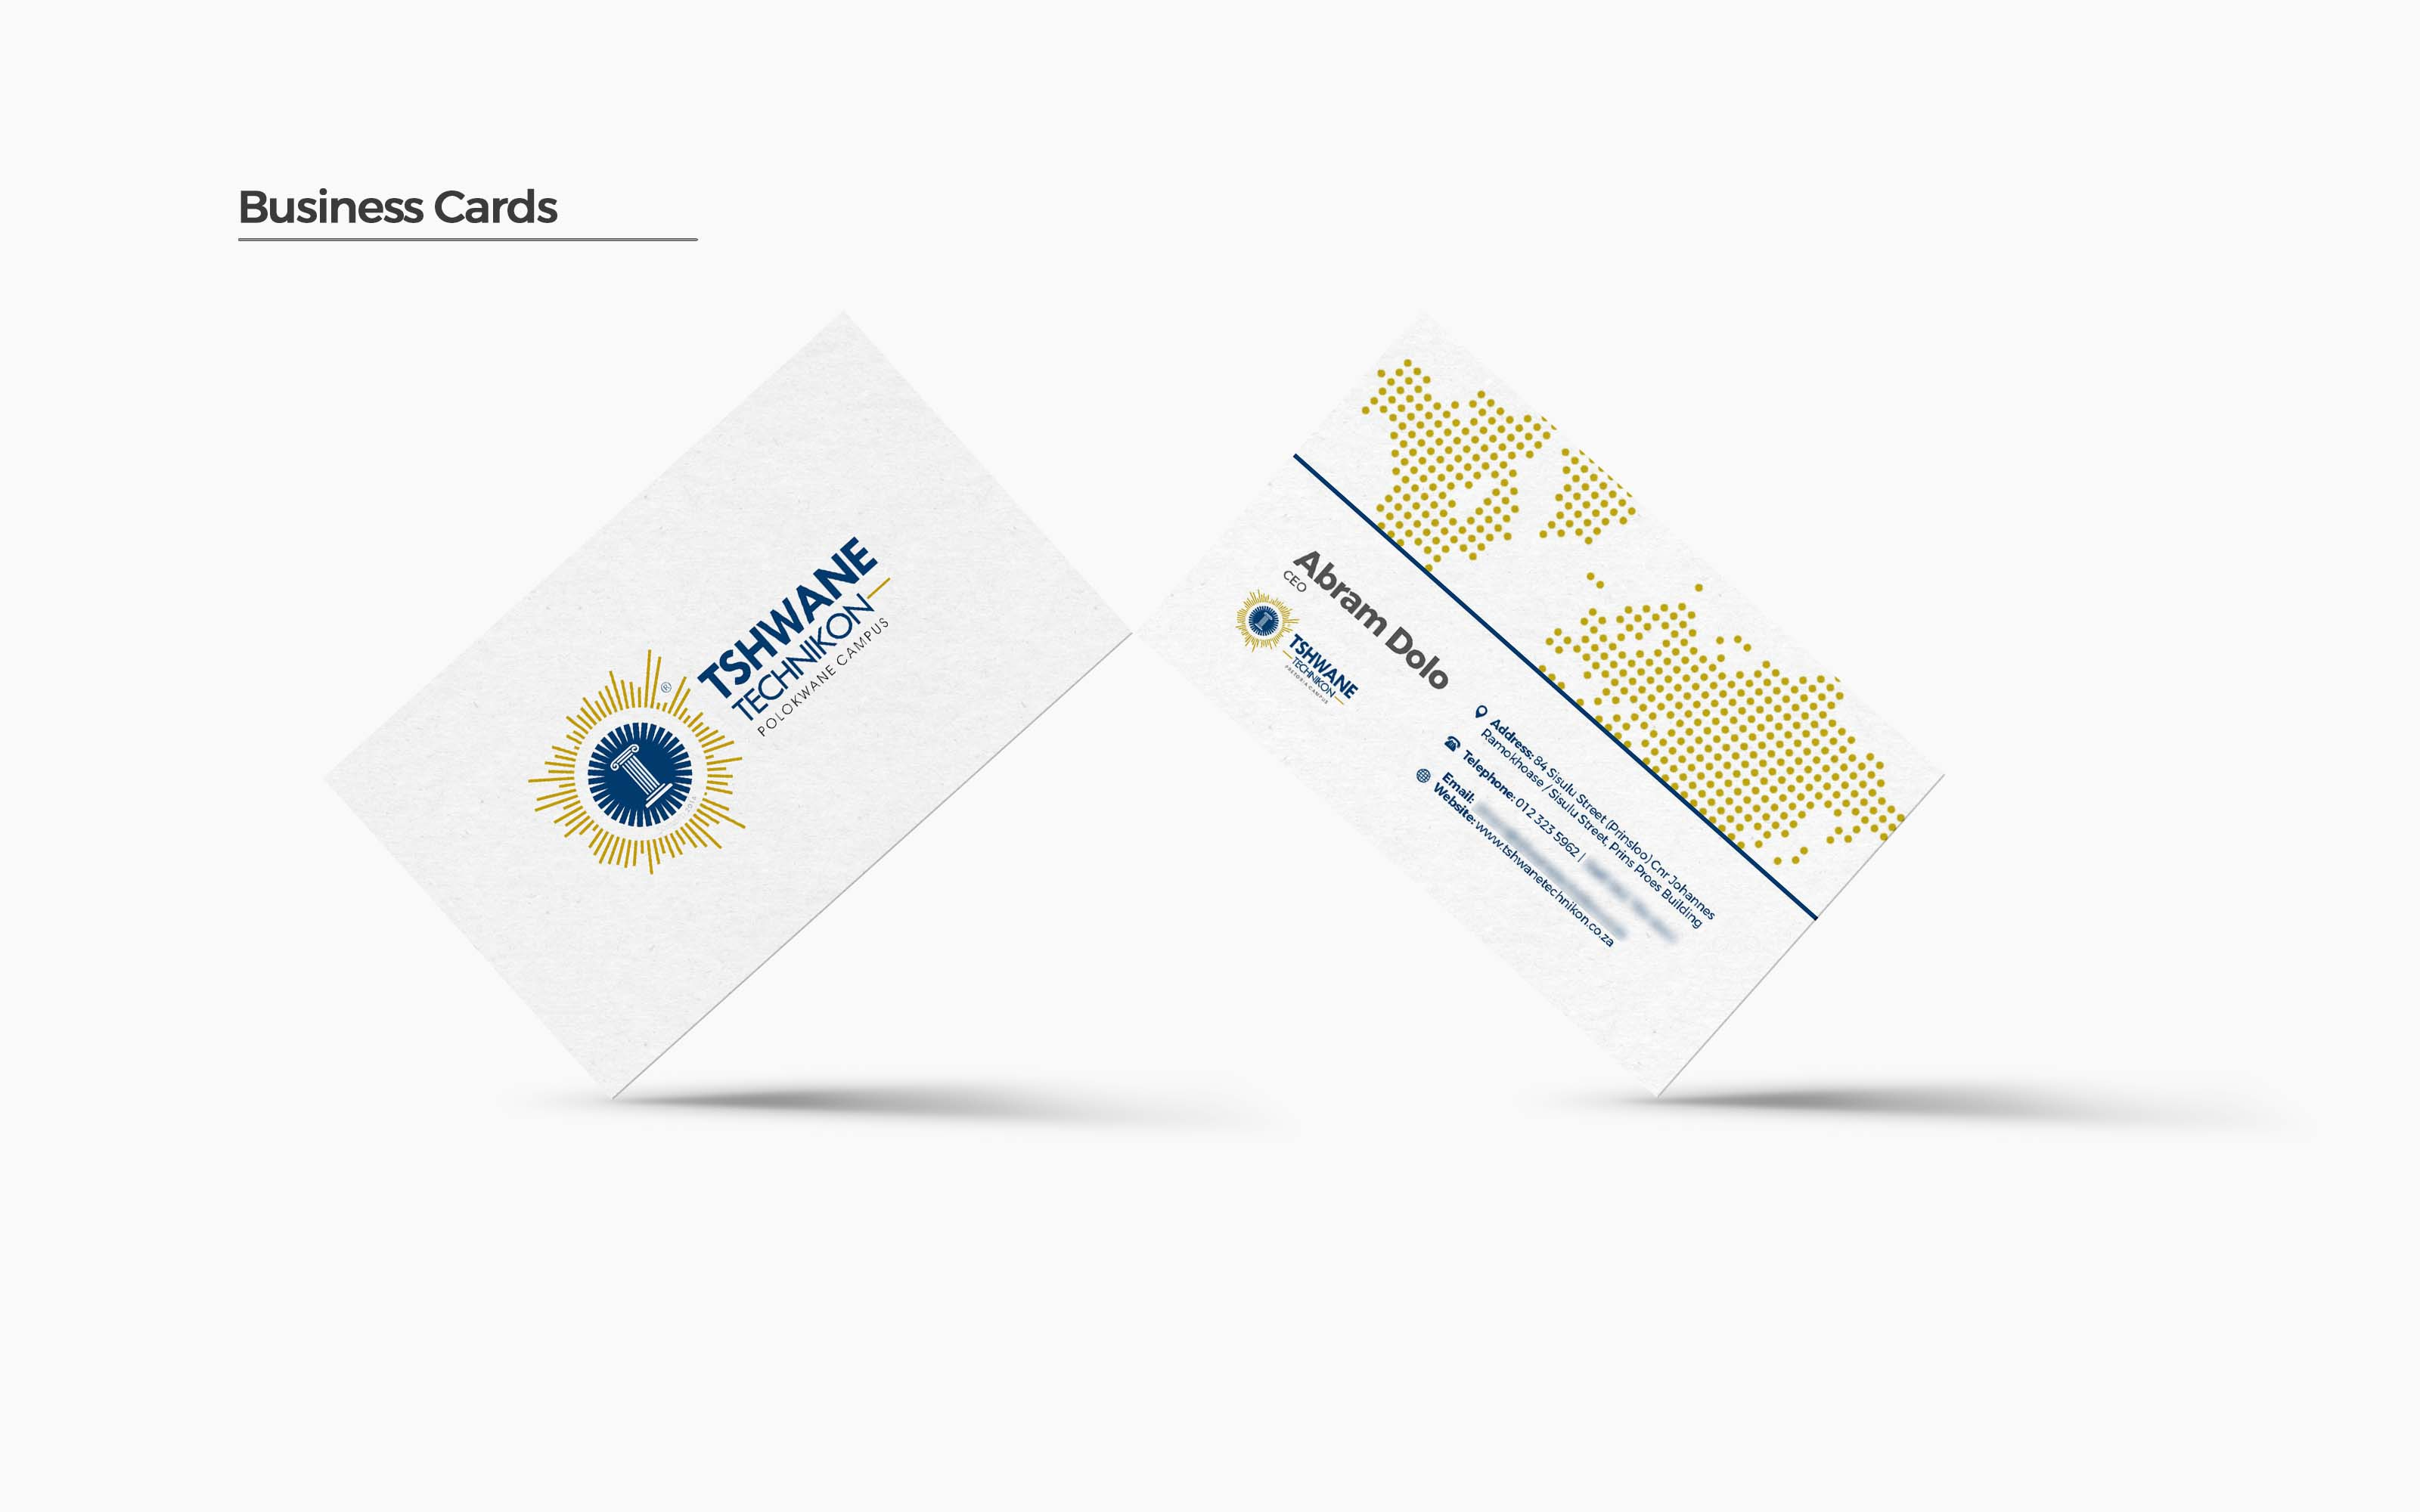 business-cards-mockup - NativityConcepts™